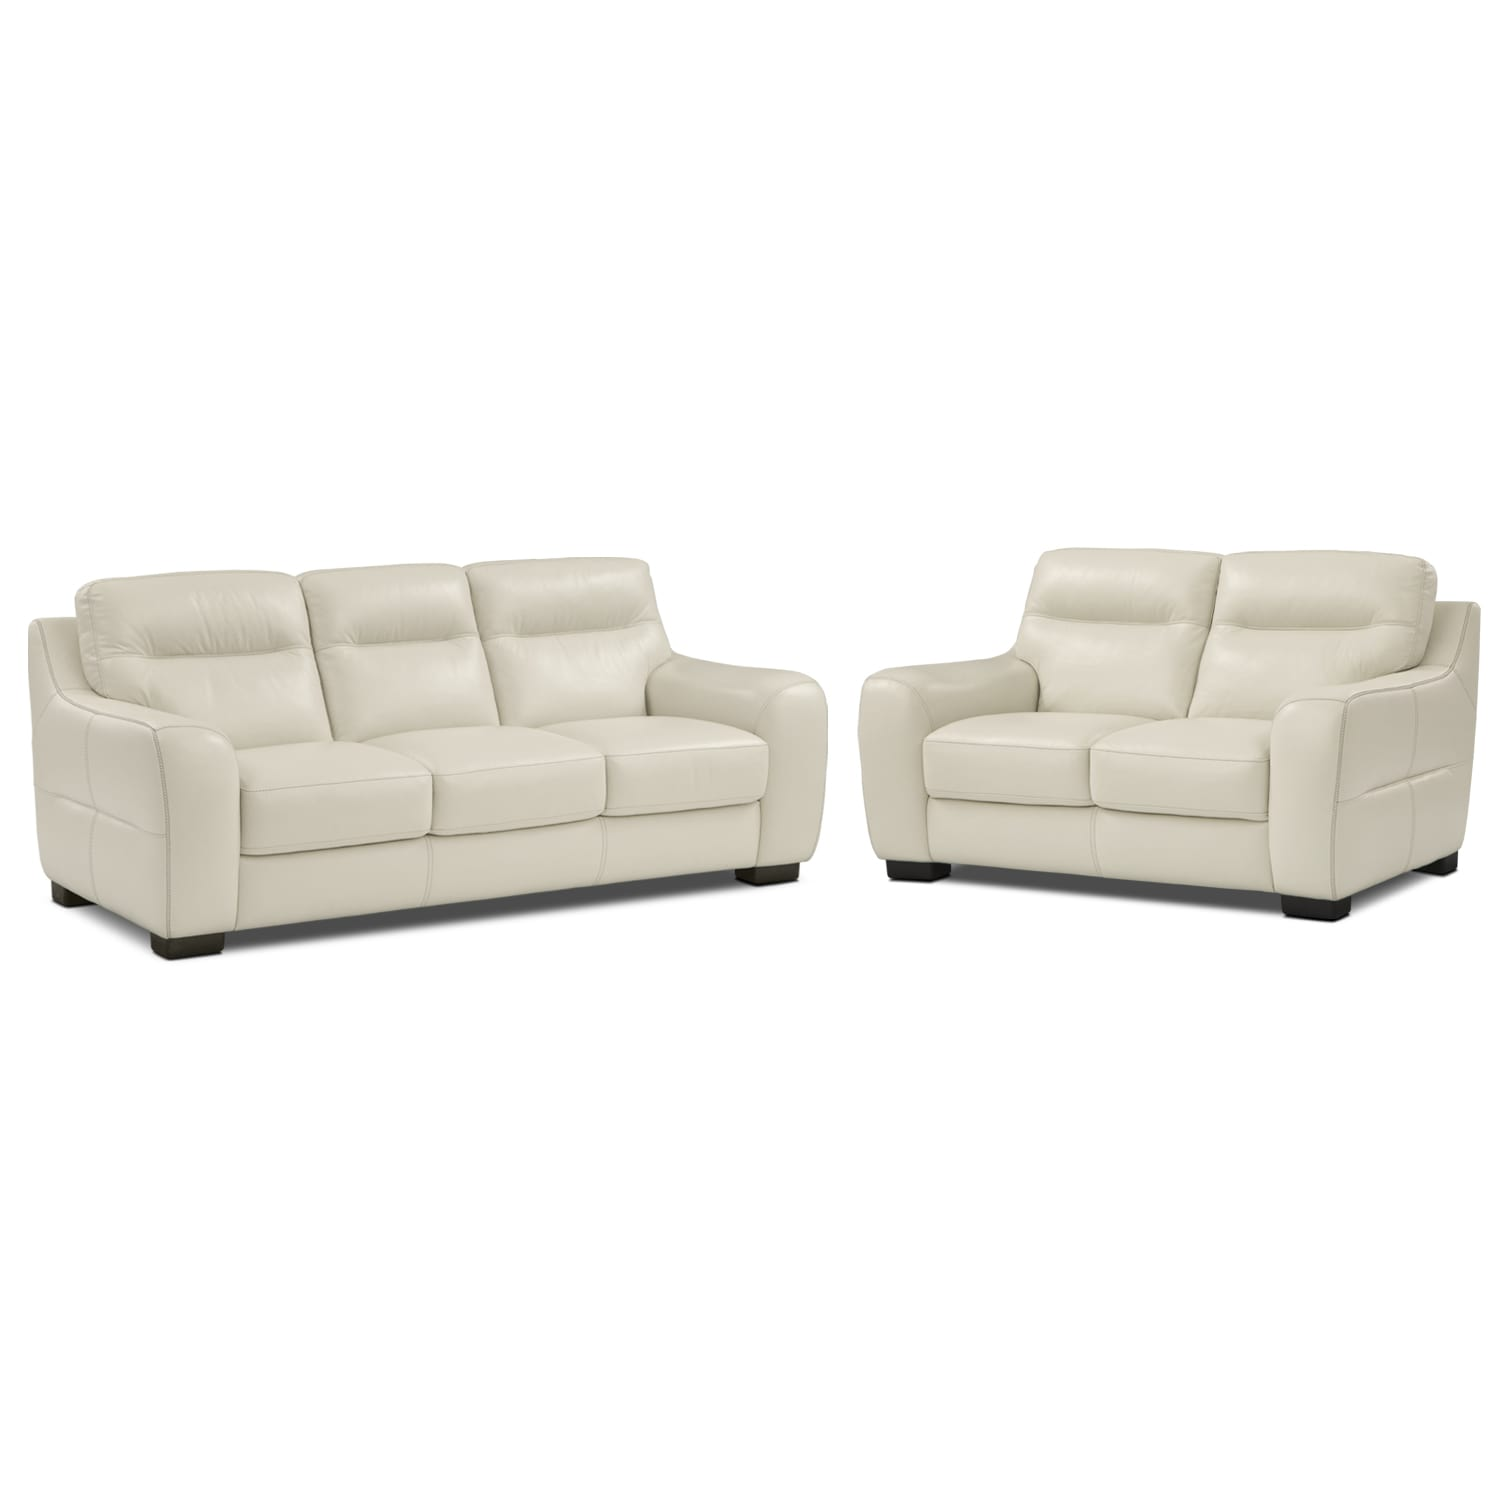 Living Room Furniture - Rocco Snow 2 Pc. Living Room